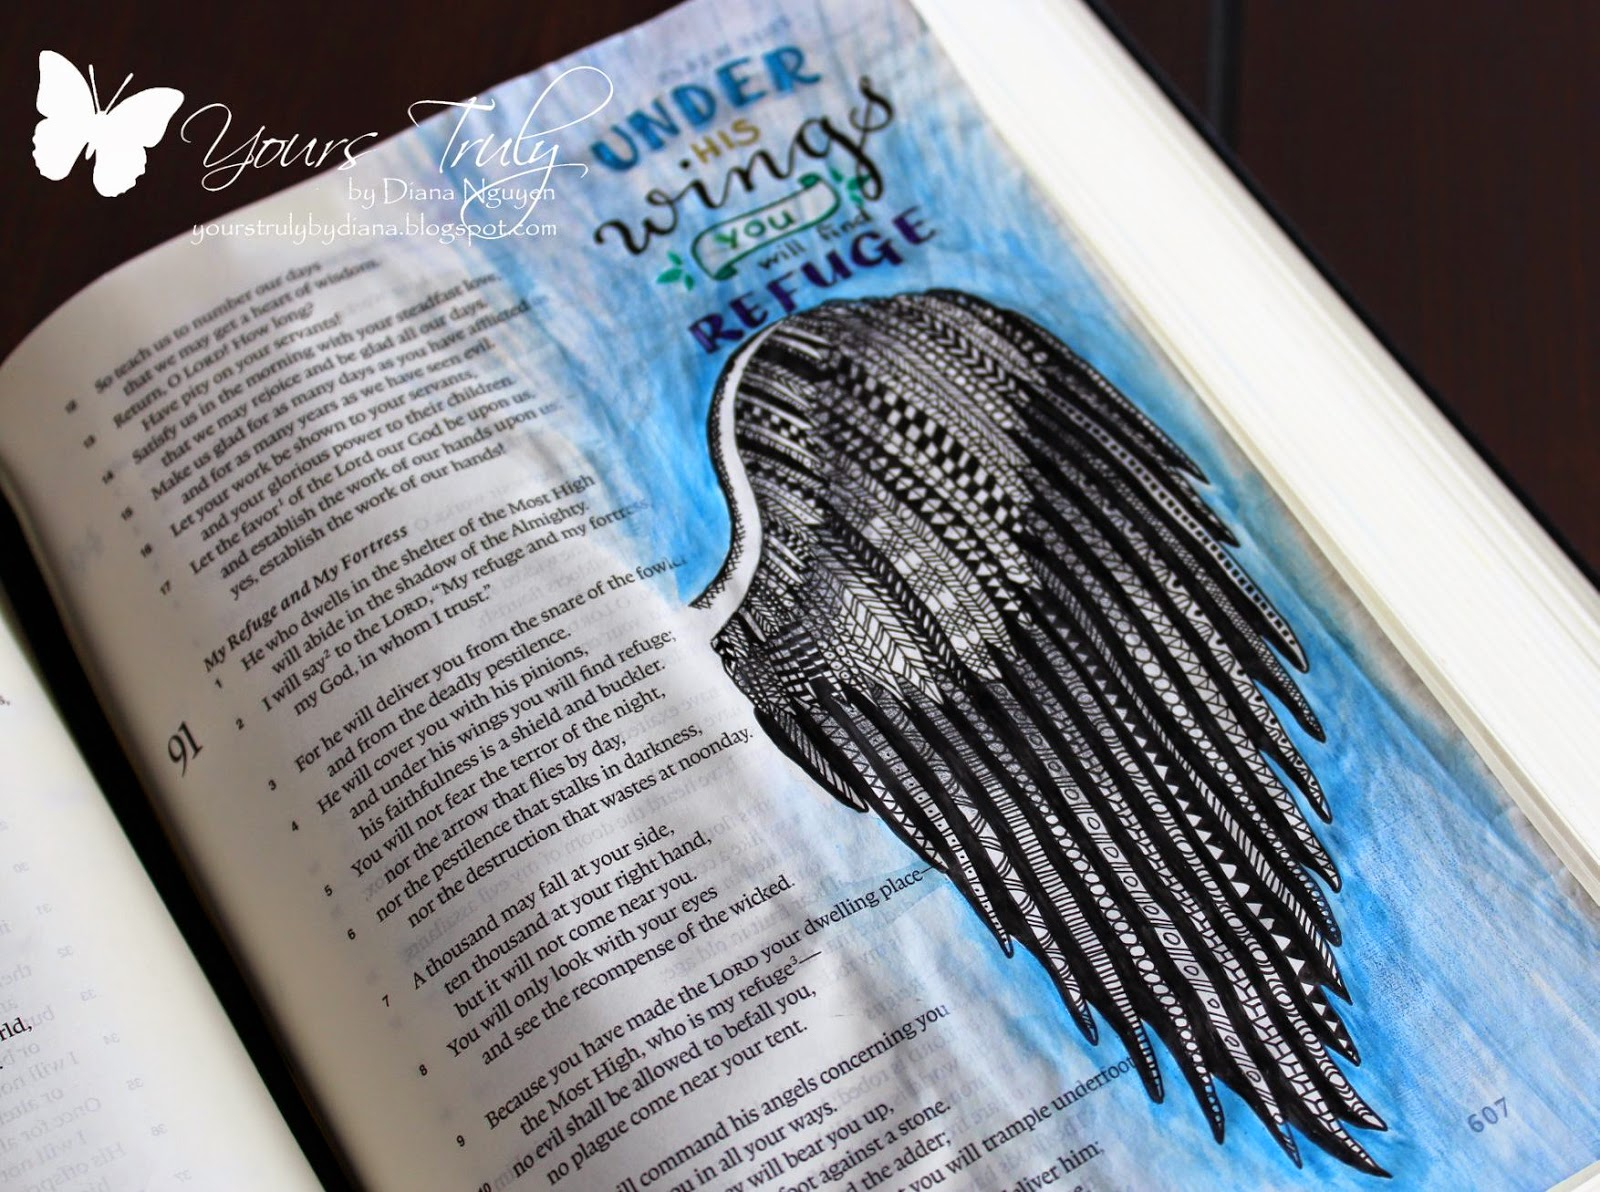 Diana Nguyen, Zentangle, bible art journaling, illustrated faith